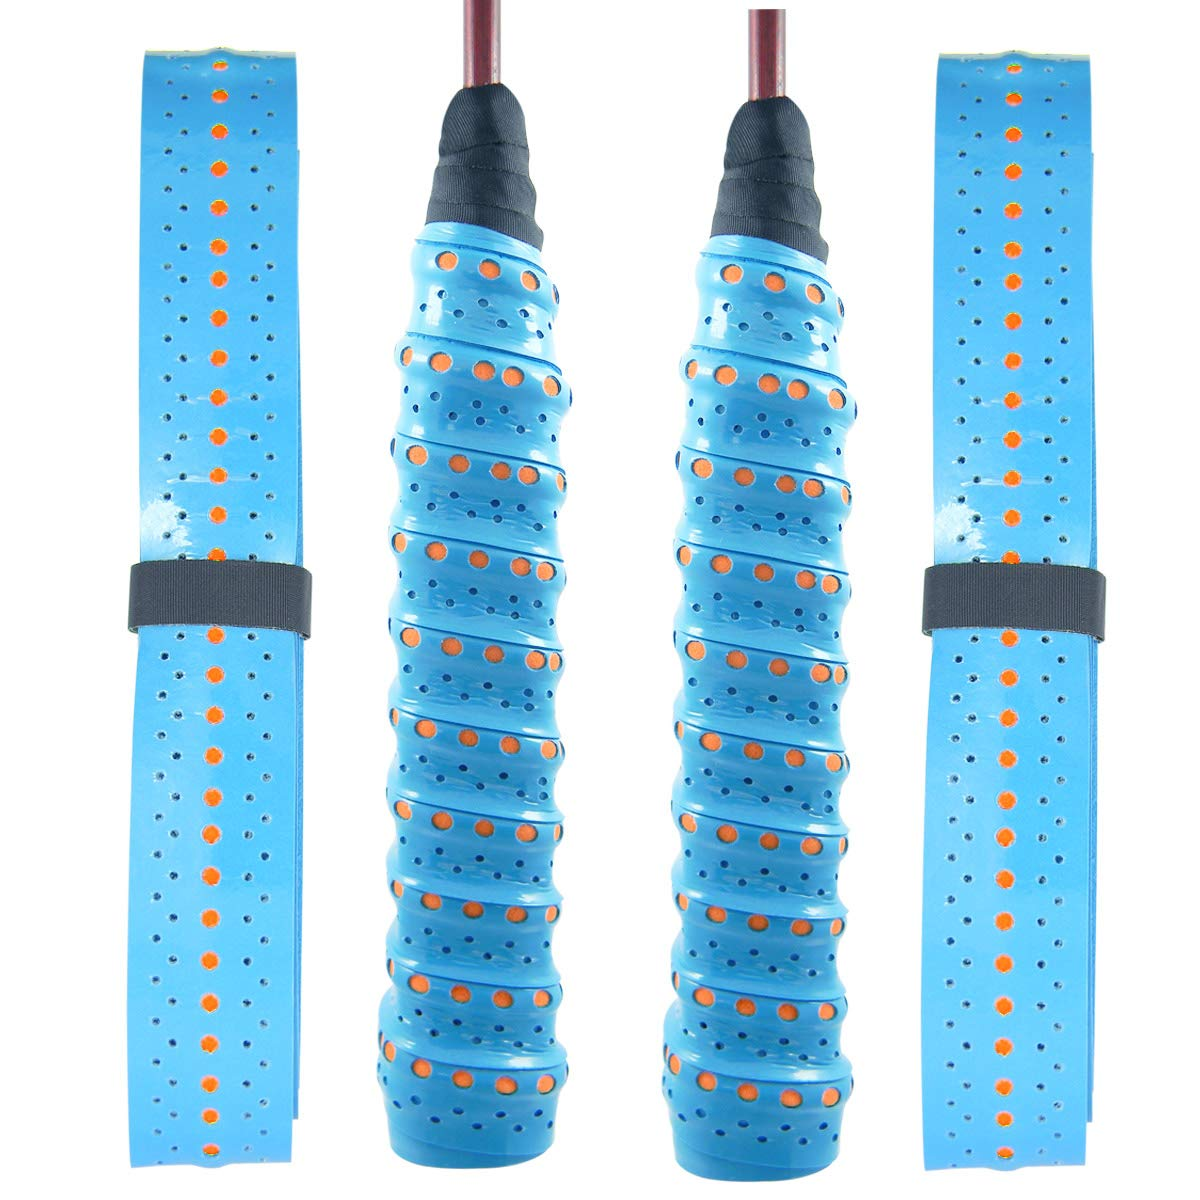 Quality Yes QY 2Pack Widened Perforated Super Absorbent Tennis Racket Overgrip Anti Slip Badminton Racket Tape Wrap Table Tennis Racket Tape 2 Tone Light Blue